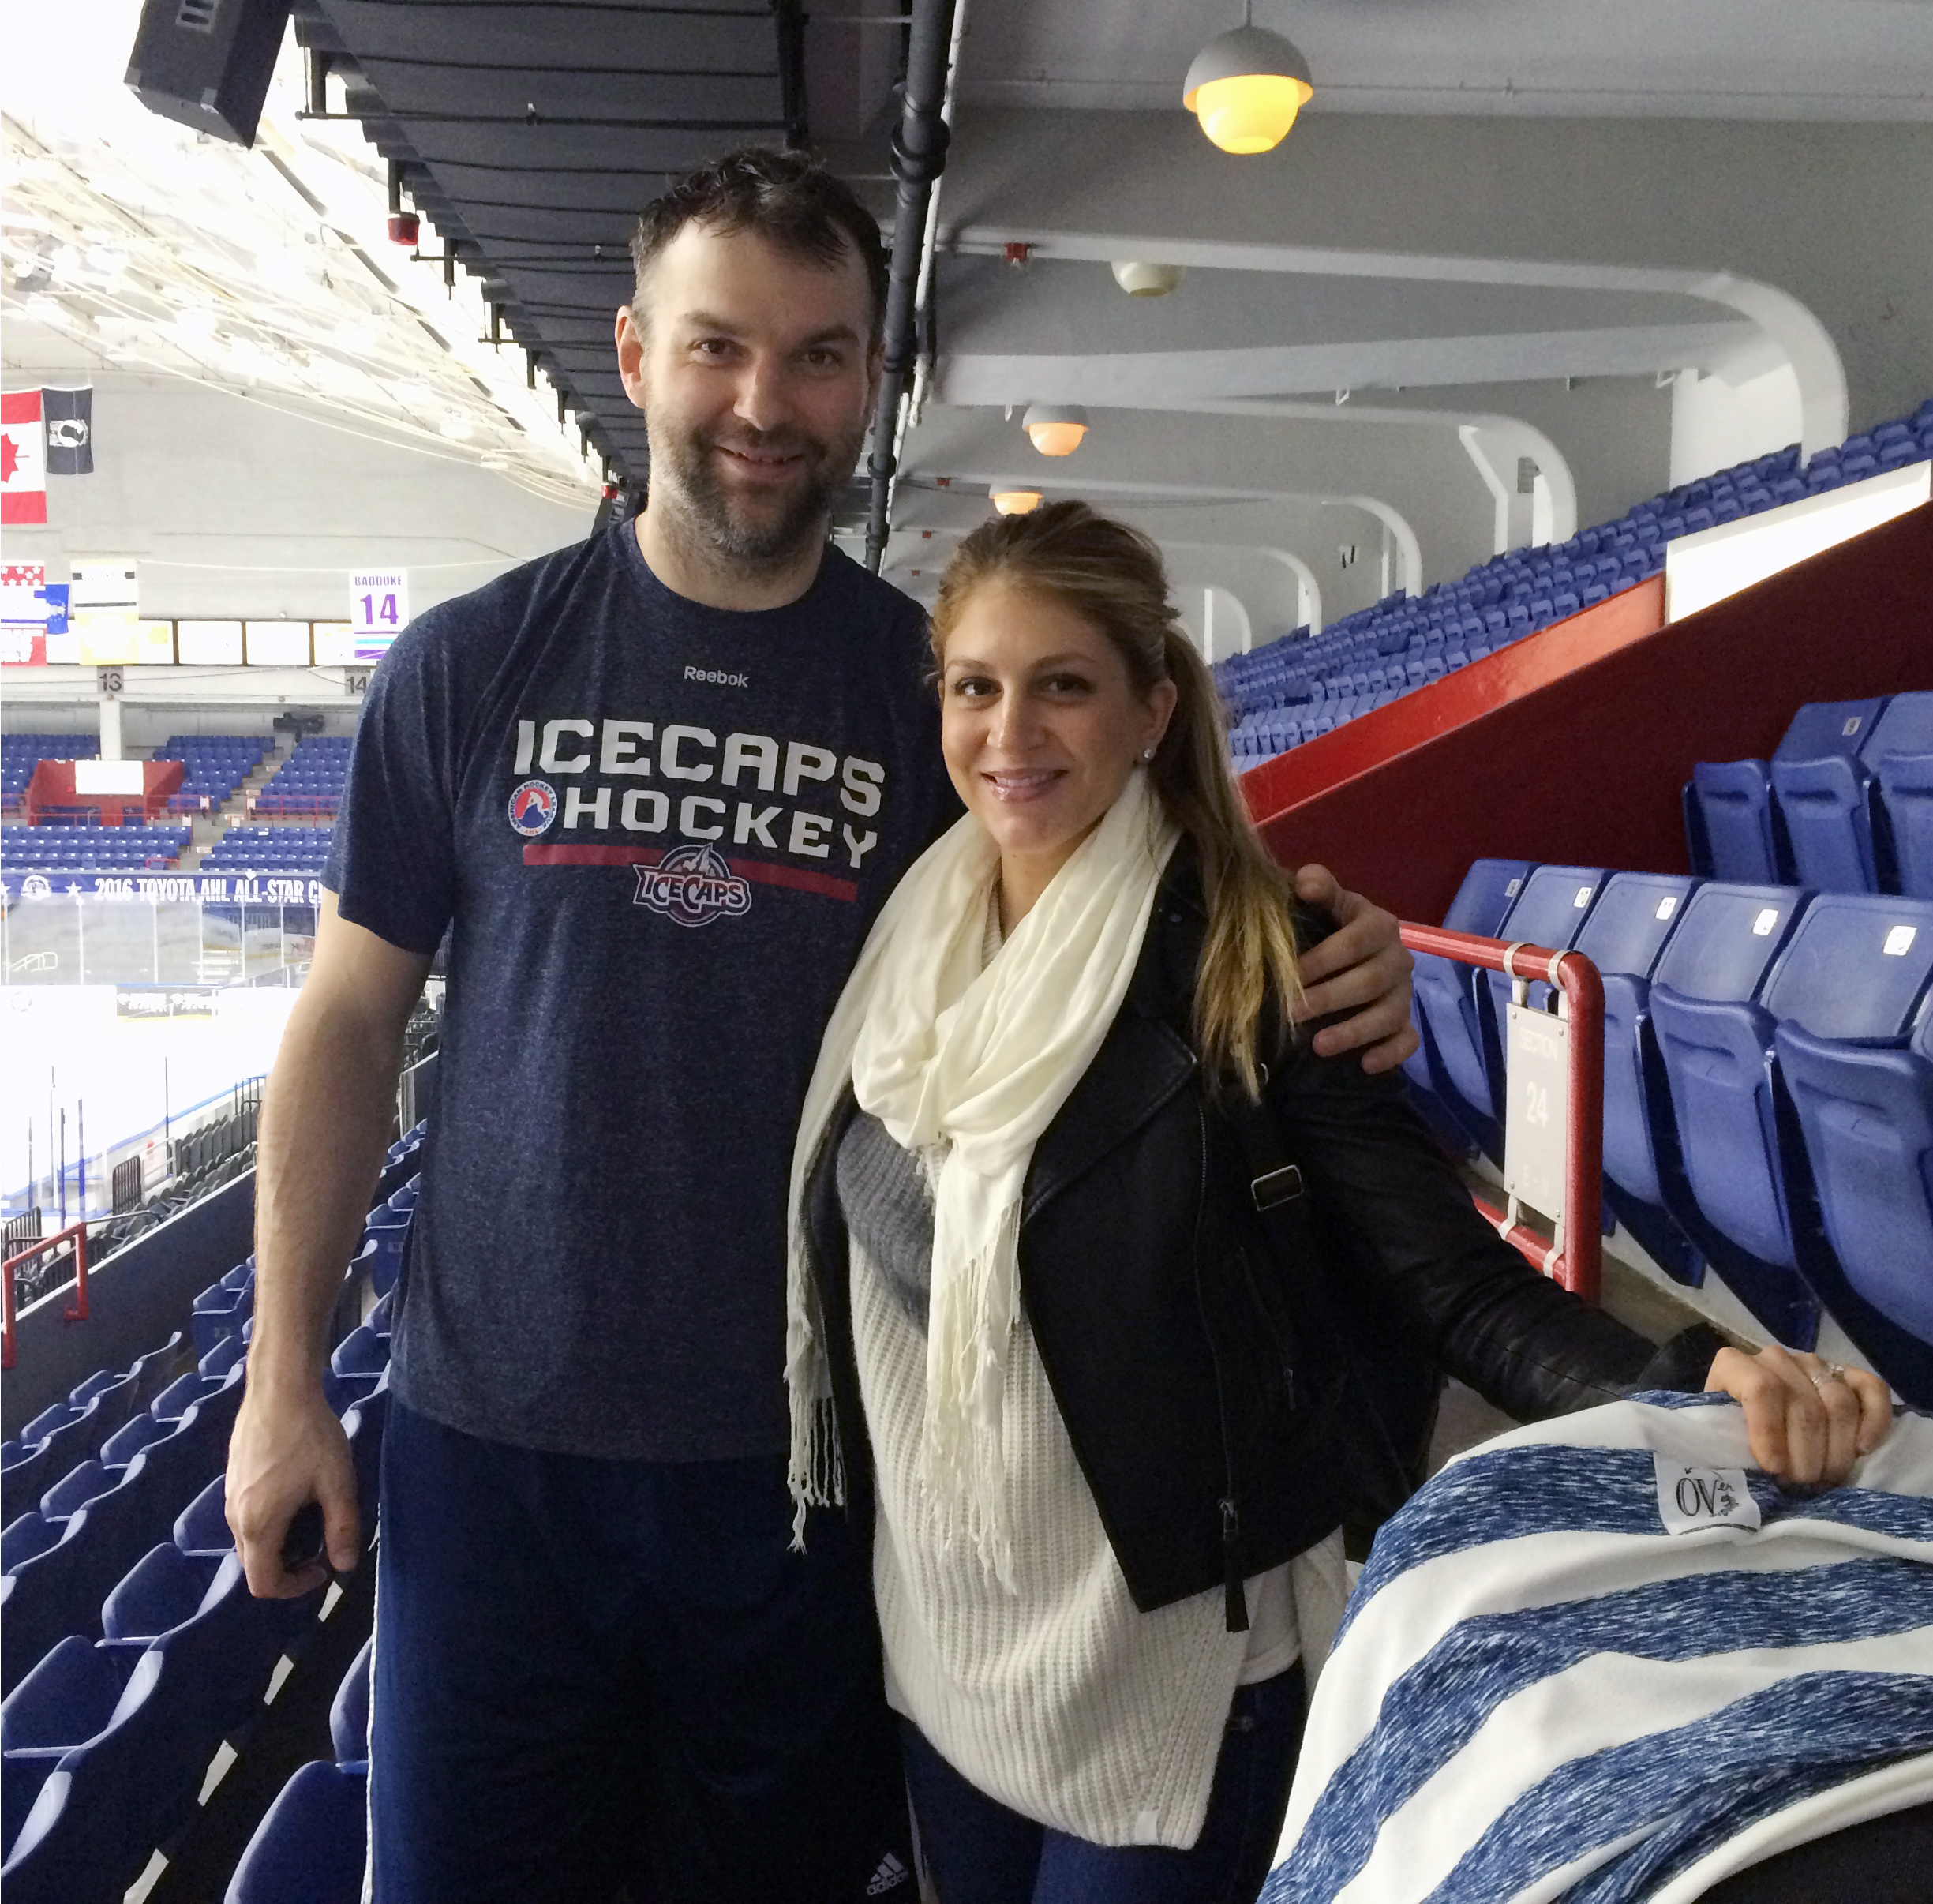 In this Sunday, March 20, 2016 photo, St. John's IceCaps hockey player John Scott and his wife, Danielle, pose after an AHL hockey match against Syracuse, in Syracuse, N.Y. The journeyman tough guy who won the hockey world over in becoming the NHL All-Sta